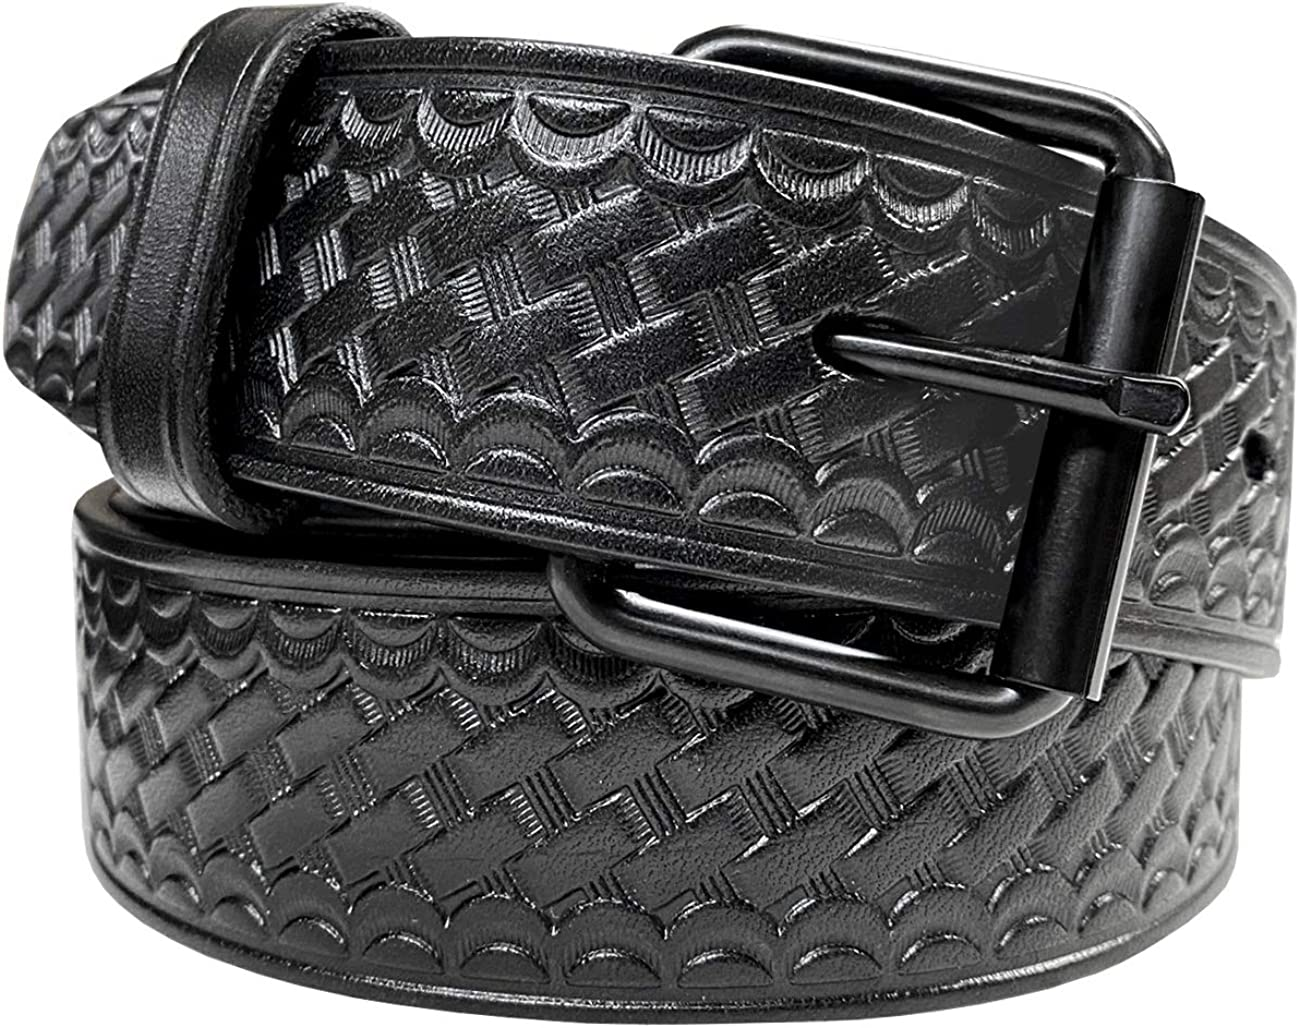 Men's Utility Uniform Work Belt Black Buckle Casual P Roller Year-end annual account One Houston Mall